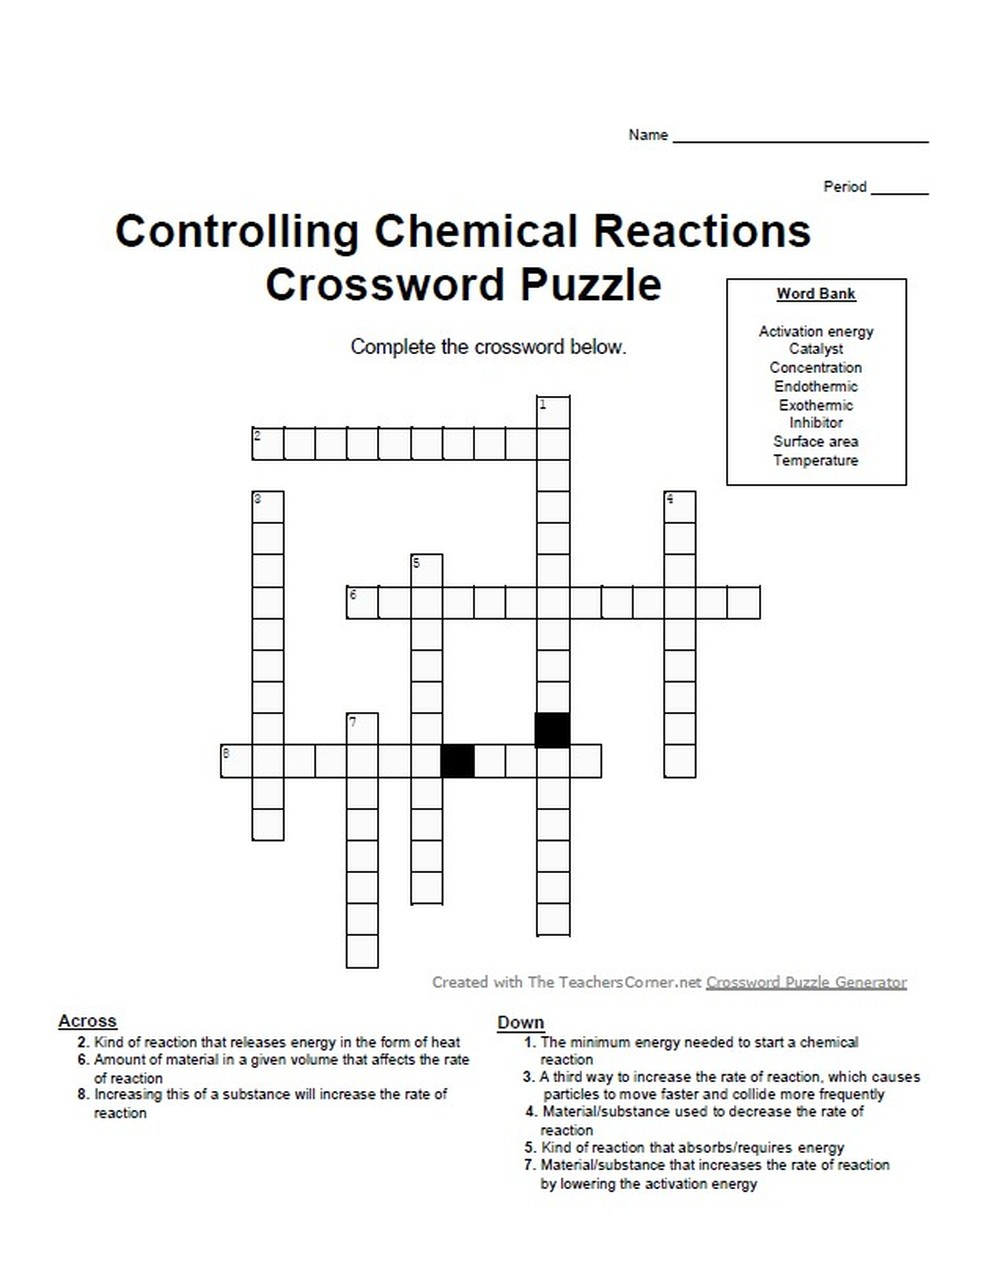 Introduction To Chemistry Controlling Chemical Reactions Crossword Puzzle Chemistry Activities Crossword Puzzle Chemical Reactions [ 1280 x 981 Pixel ]